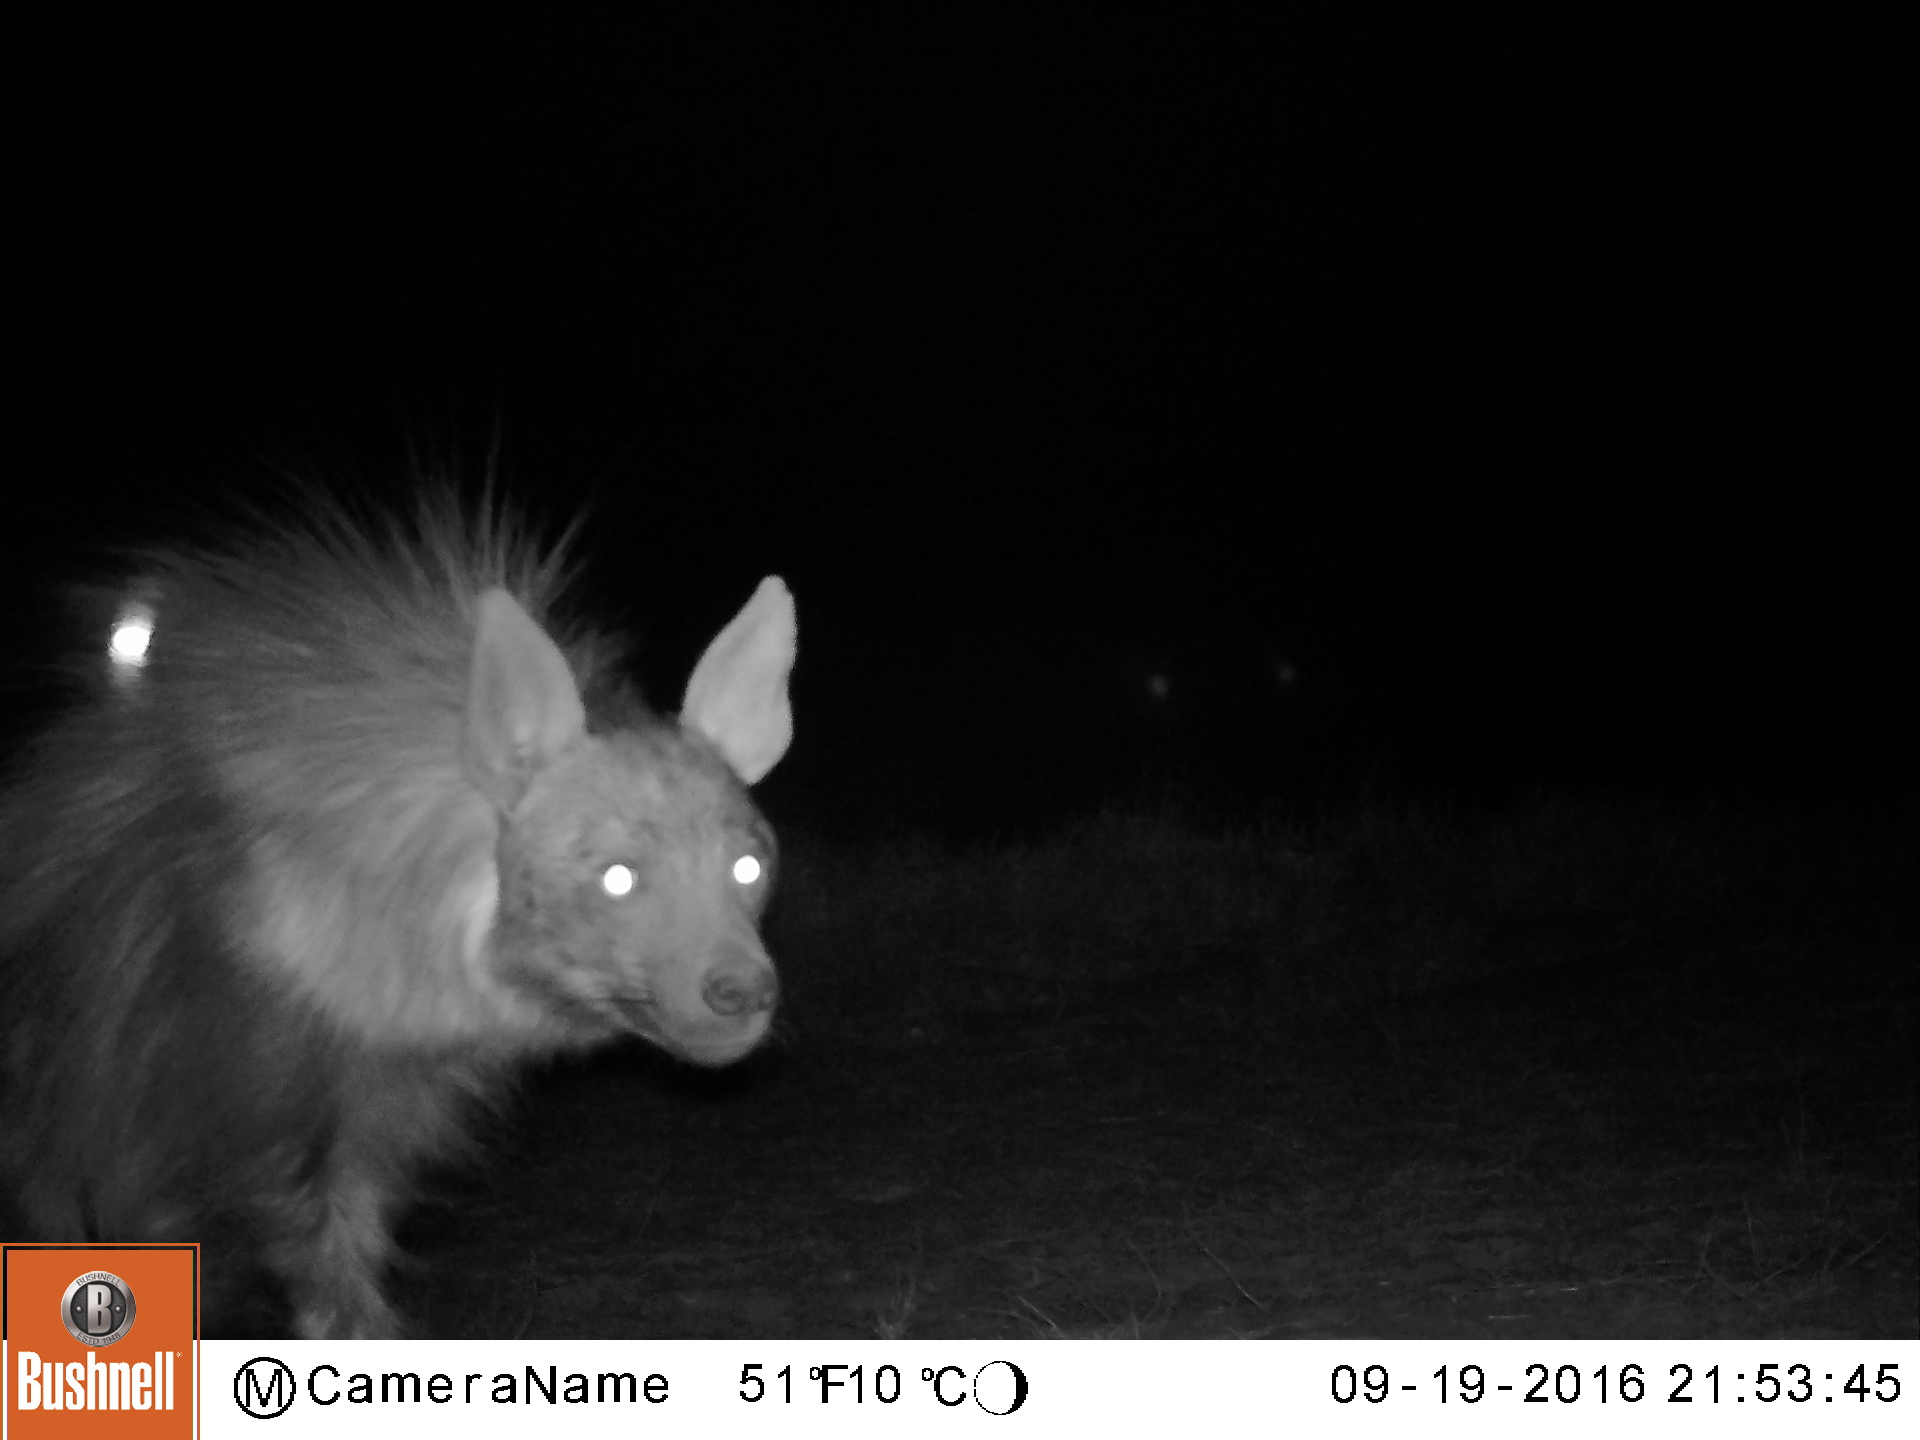 A brown hyena at night triggers a camera flash. Flashes help the researchers identify nocturnal animals but may also serve as deterrents that discourage the animals from approaching a nearby livestock corral.